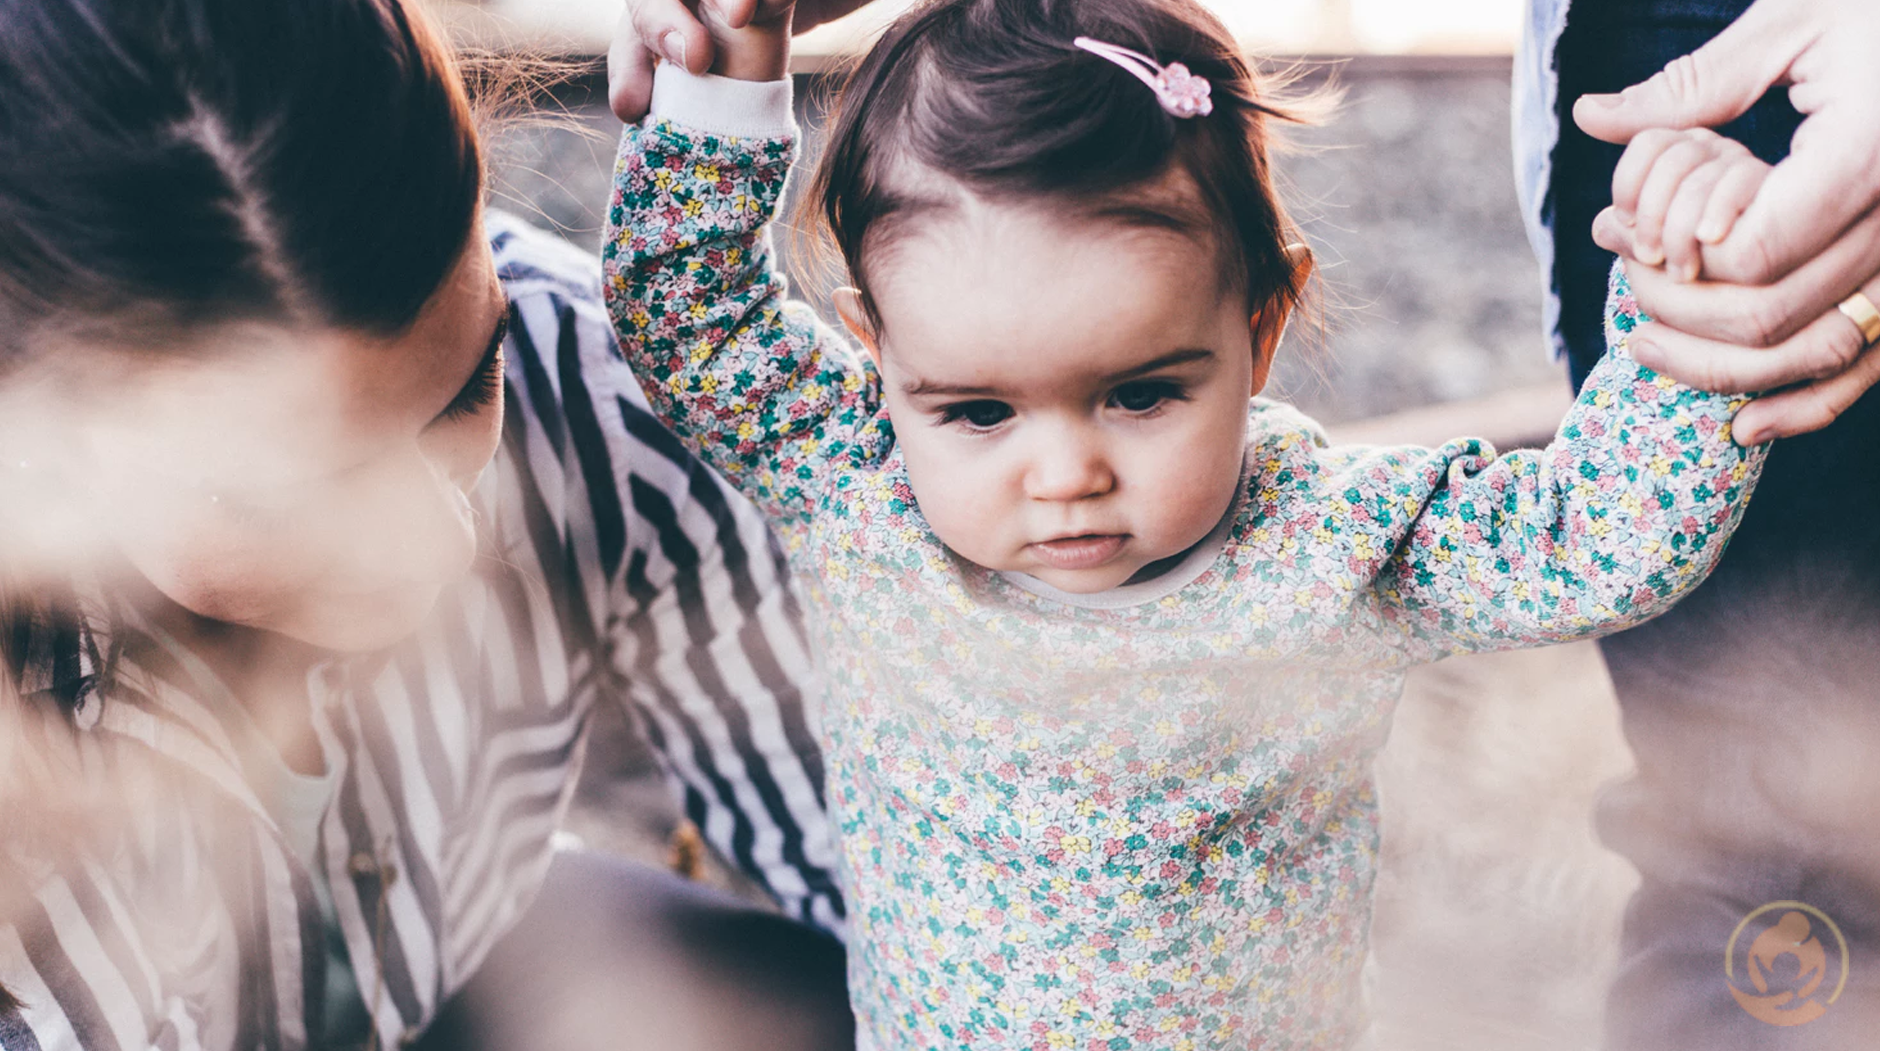 Child Welfare Tips What Childcare Providers and Parents Should Know Feauted Image woman holding girl while learning to walk taken at daytime - Child Welfare Tips: What Childcare Providers and Parents Should Know